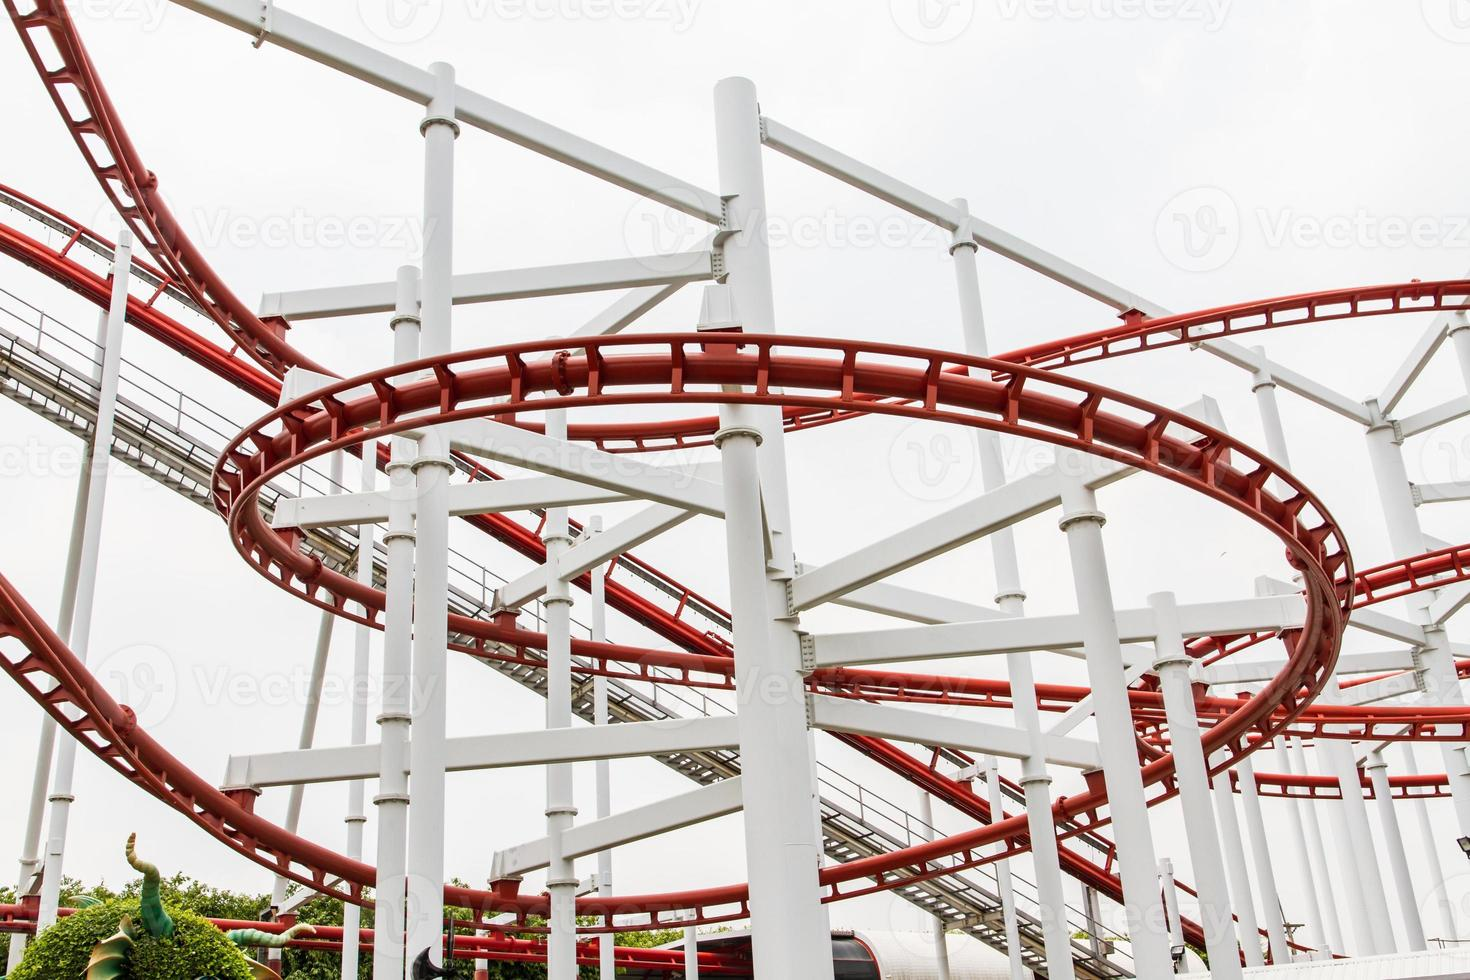 Roller Coaster's loops in Amusement park photo